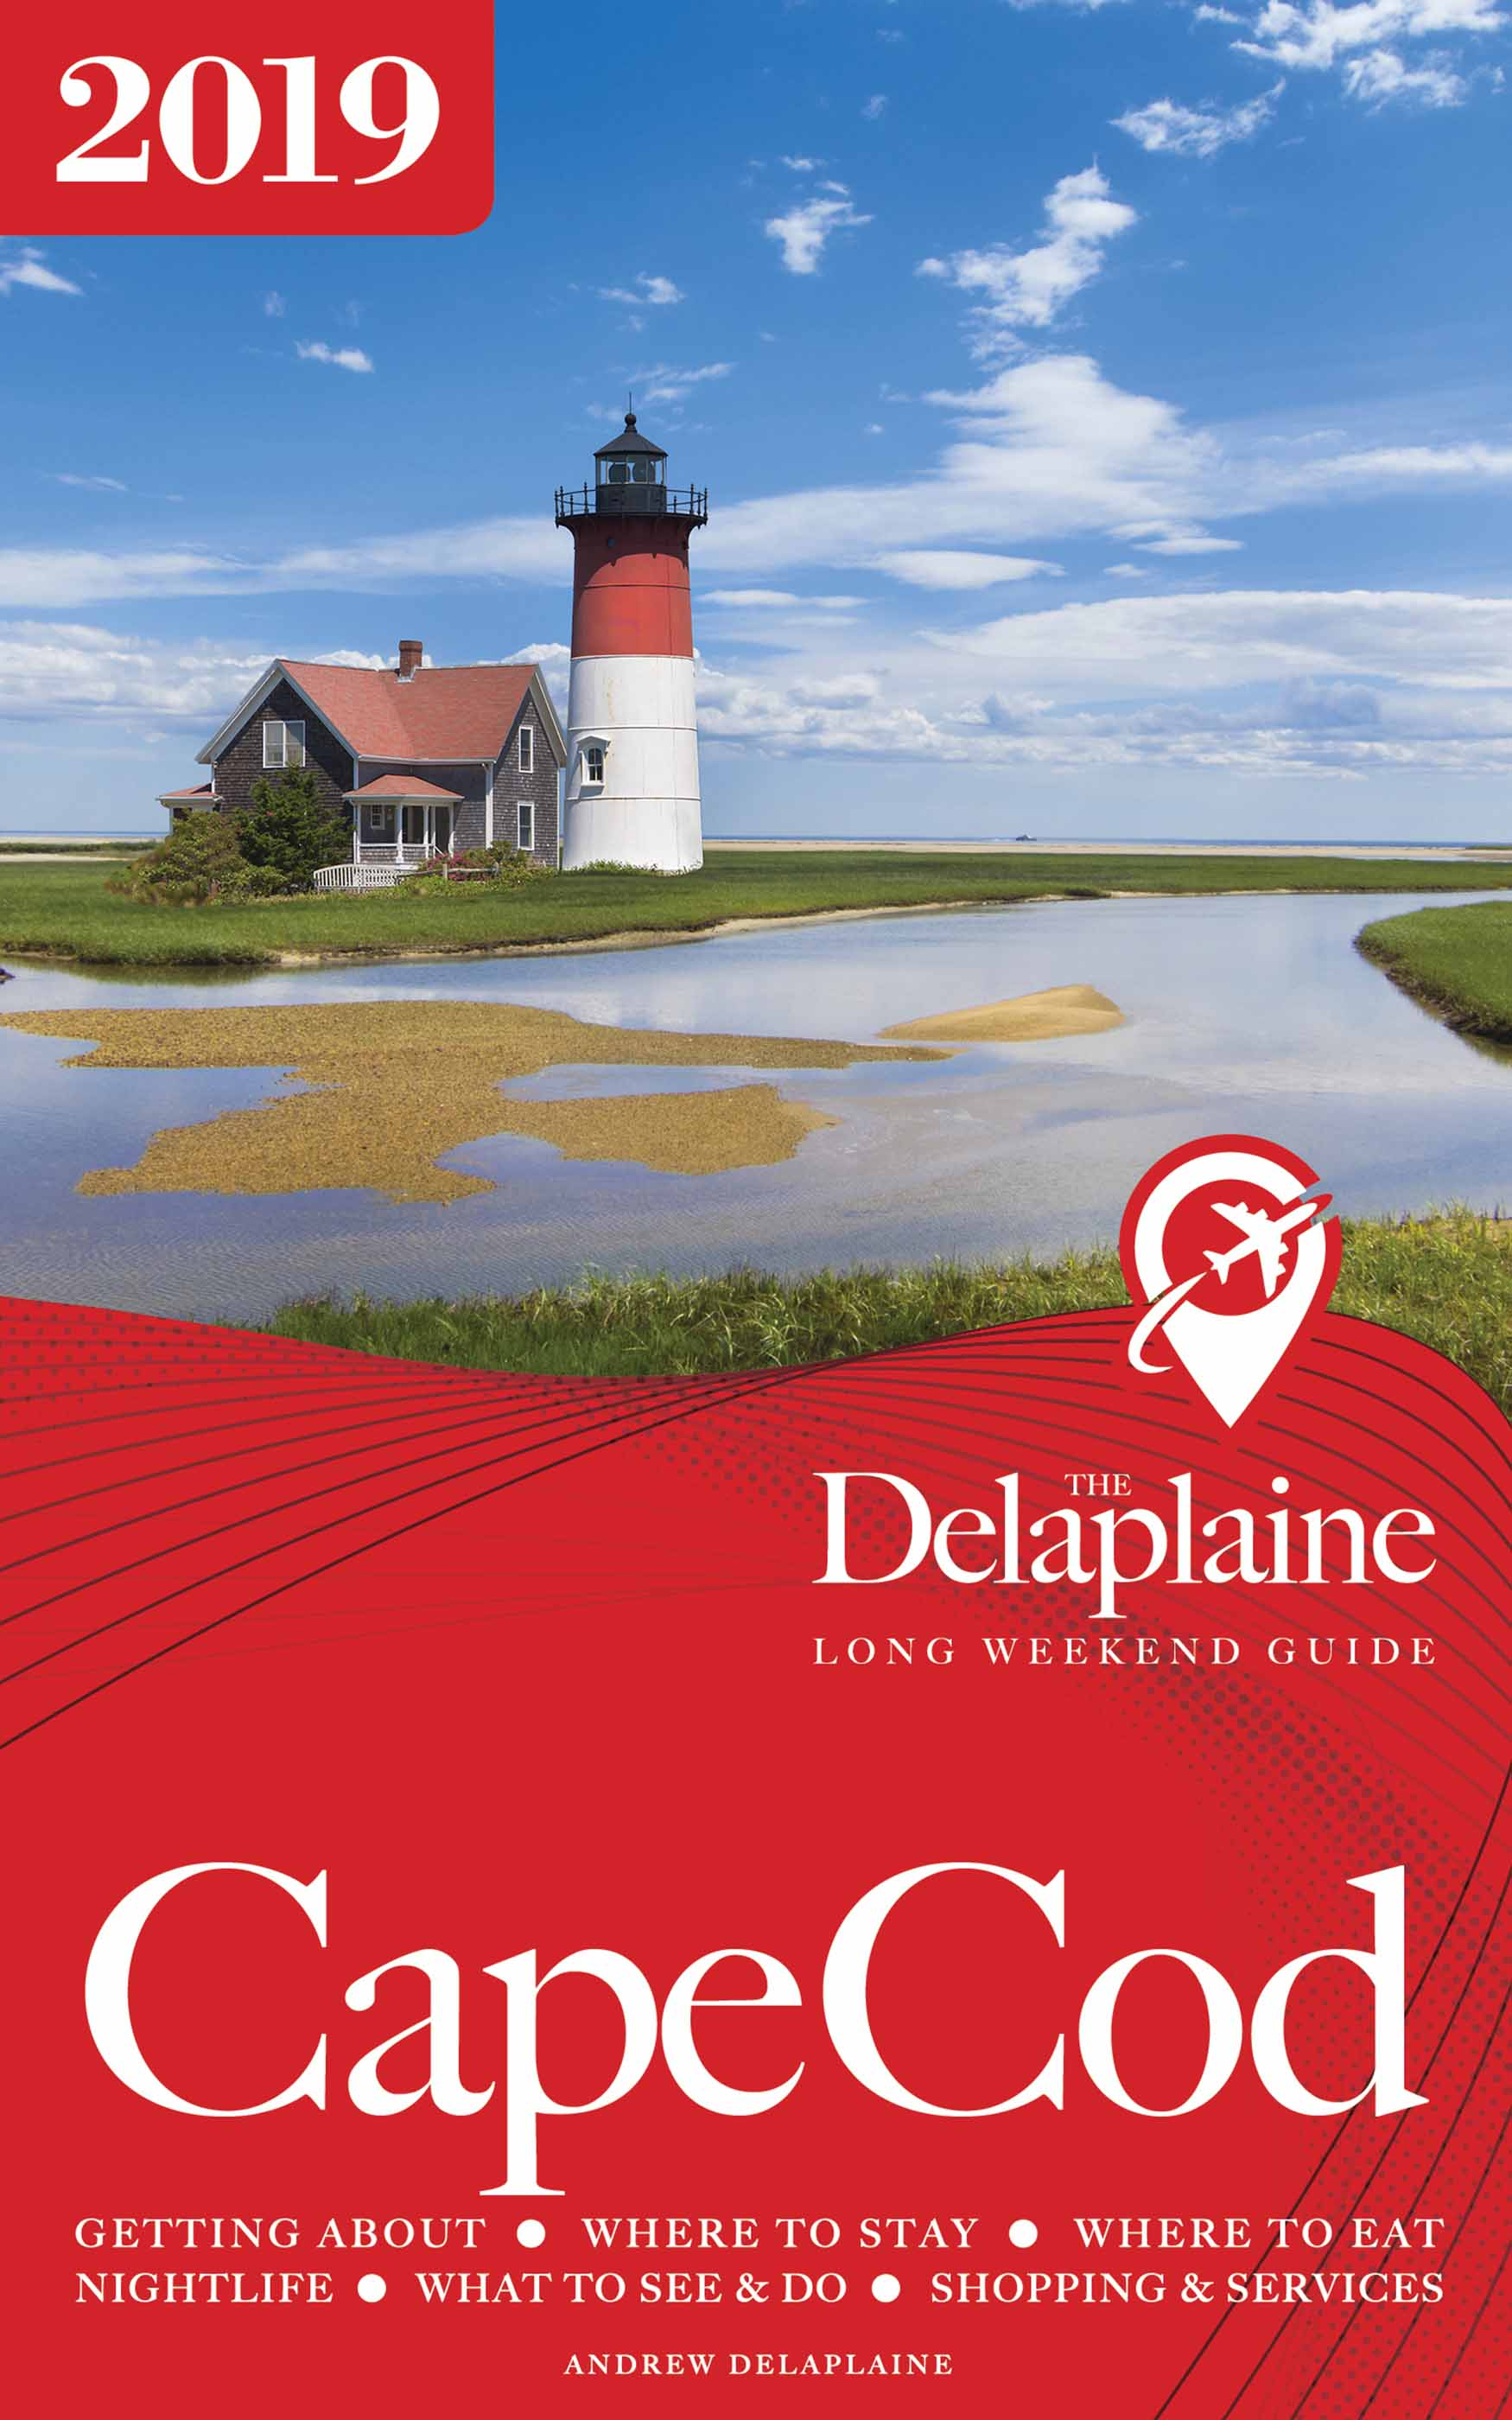 Cape Cod - The Delaplaine 2019 Long Weekend Guide, an Ebook by Andrew  Delaplaine